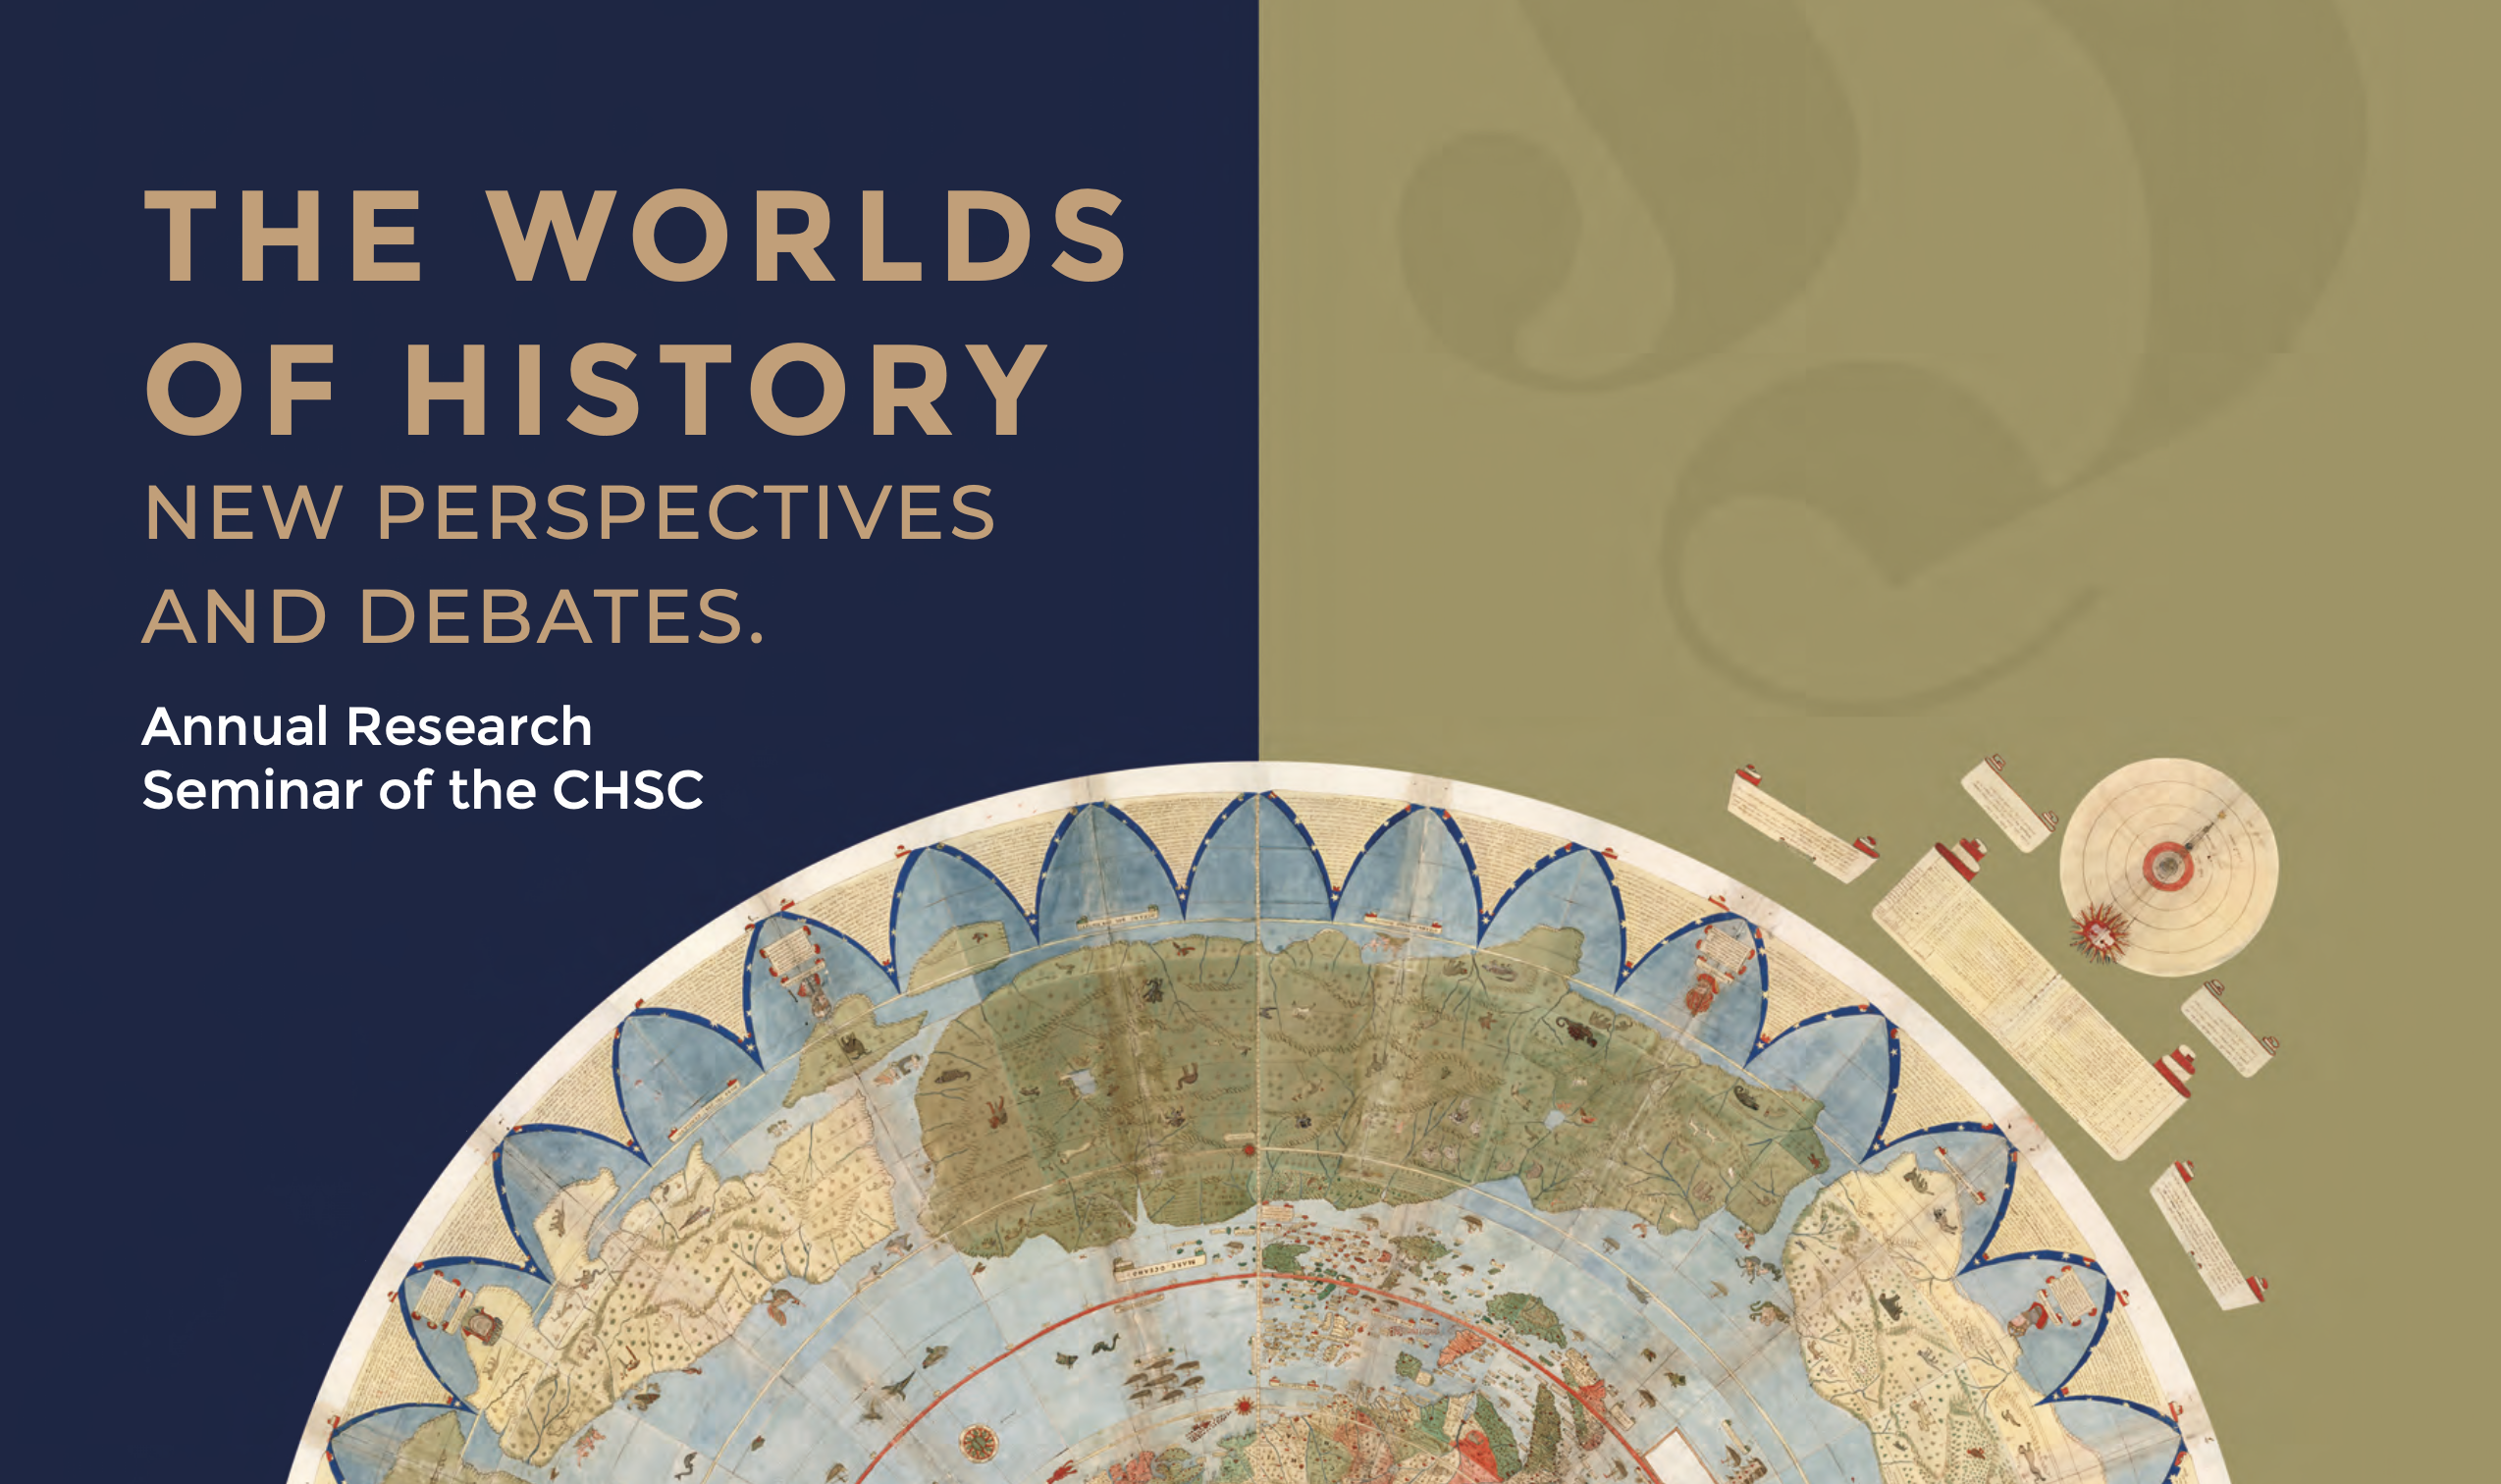 Annual Research Seminar of the CHSC: The Worlds of History. New Perspectives and Debates